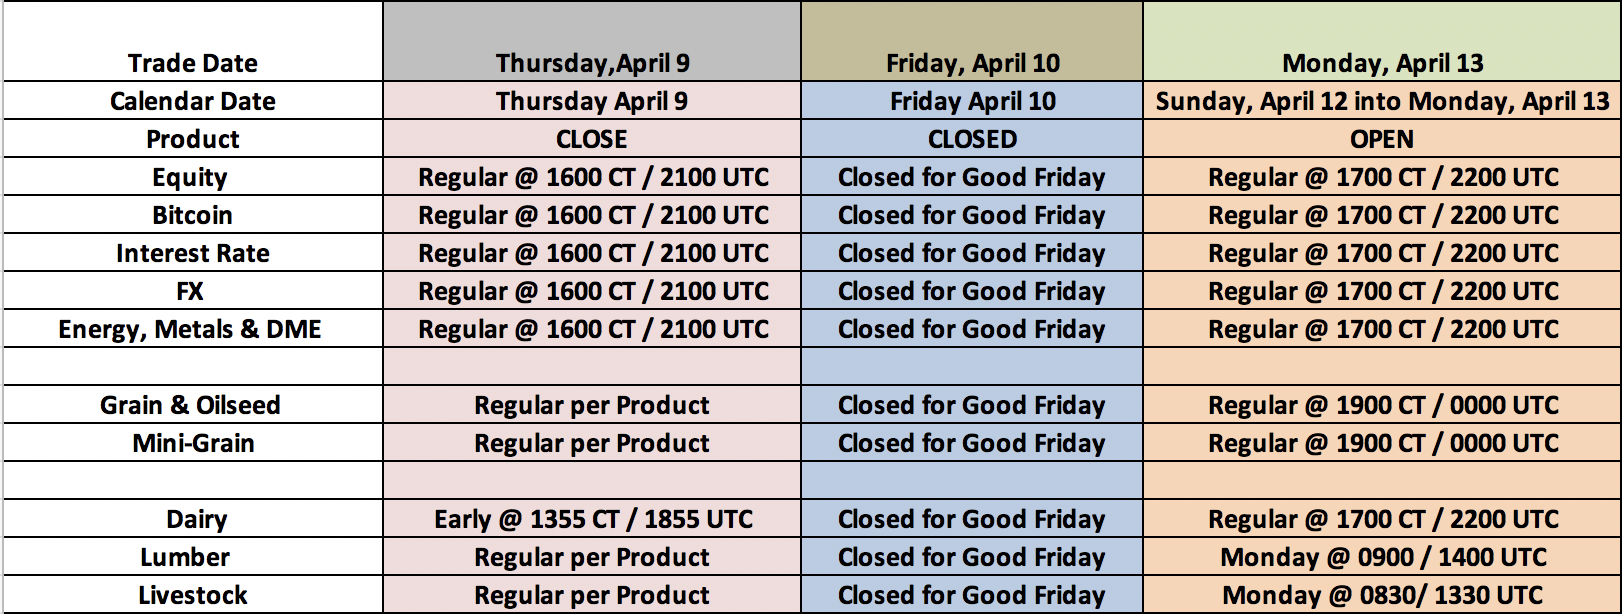 CME_Group_Globex_Good_Friday_Holiday_Schedule_-_April_9_2020_to_April_13__2020.png